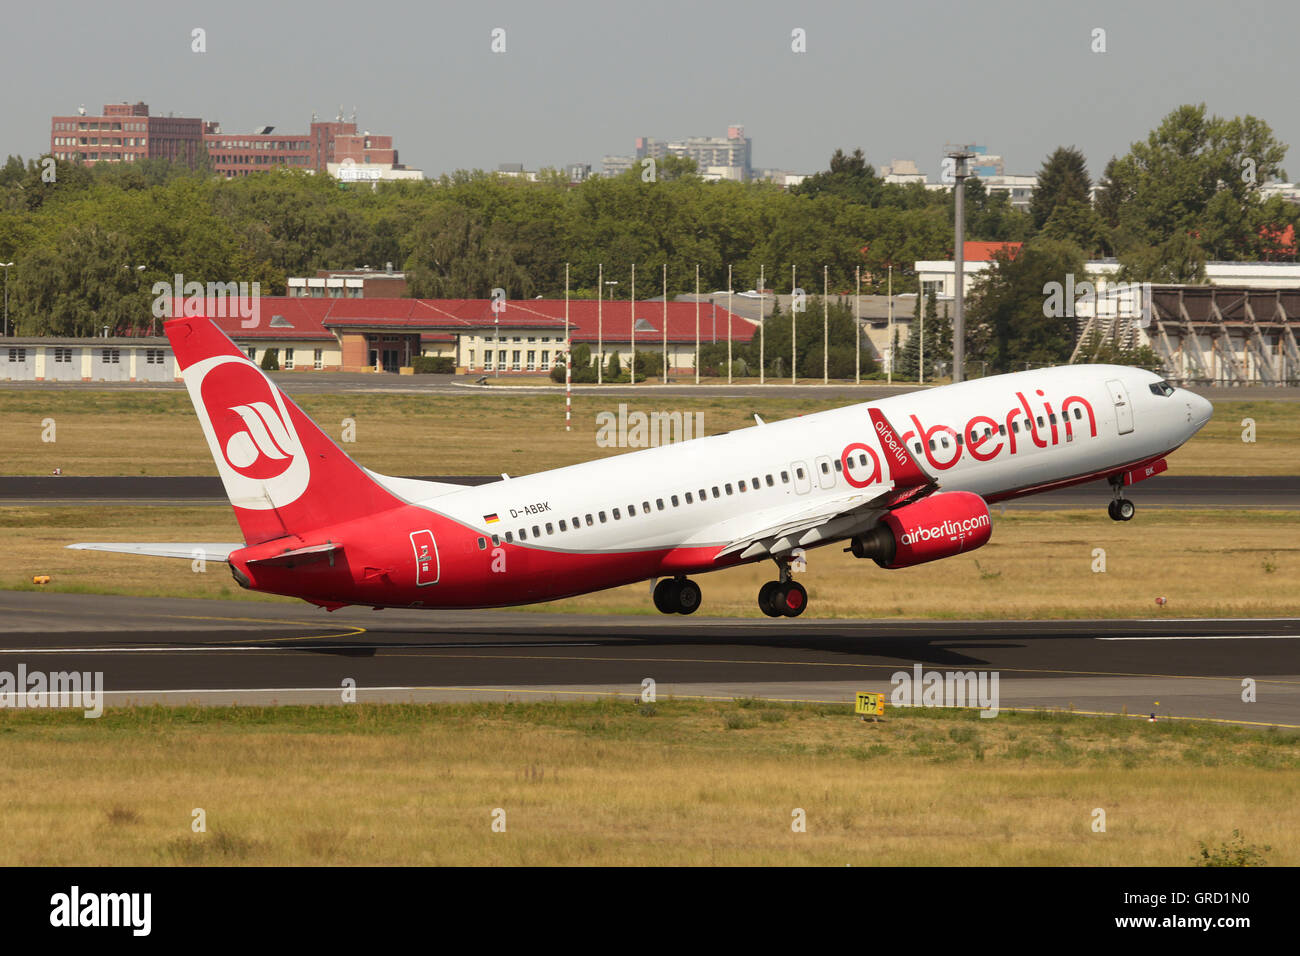 Boeing 737-800 Wirg Registration D-Abbk Of Airberlin Rotates At Tegel Airport Berlin - Stock Image